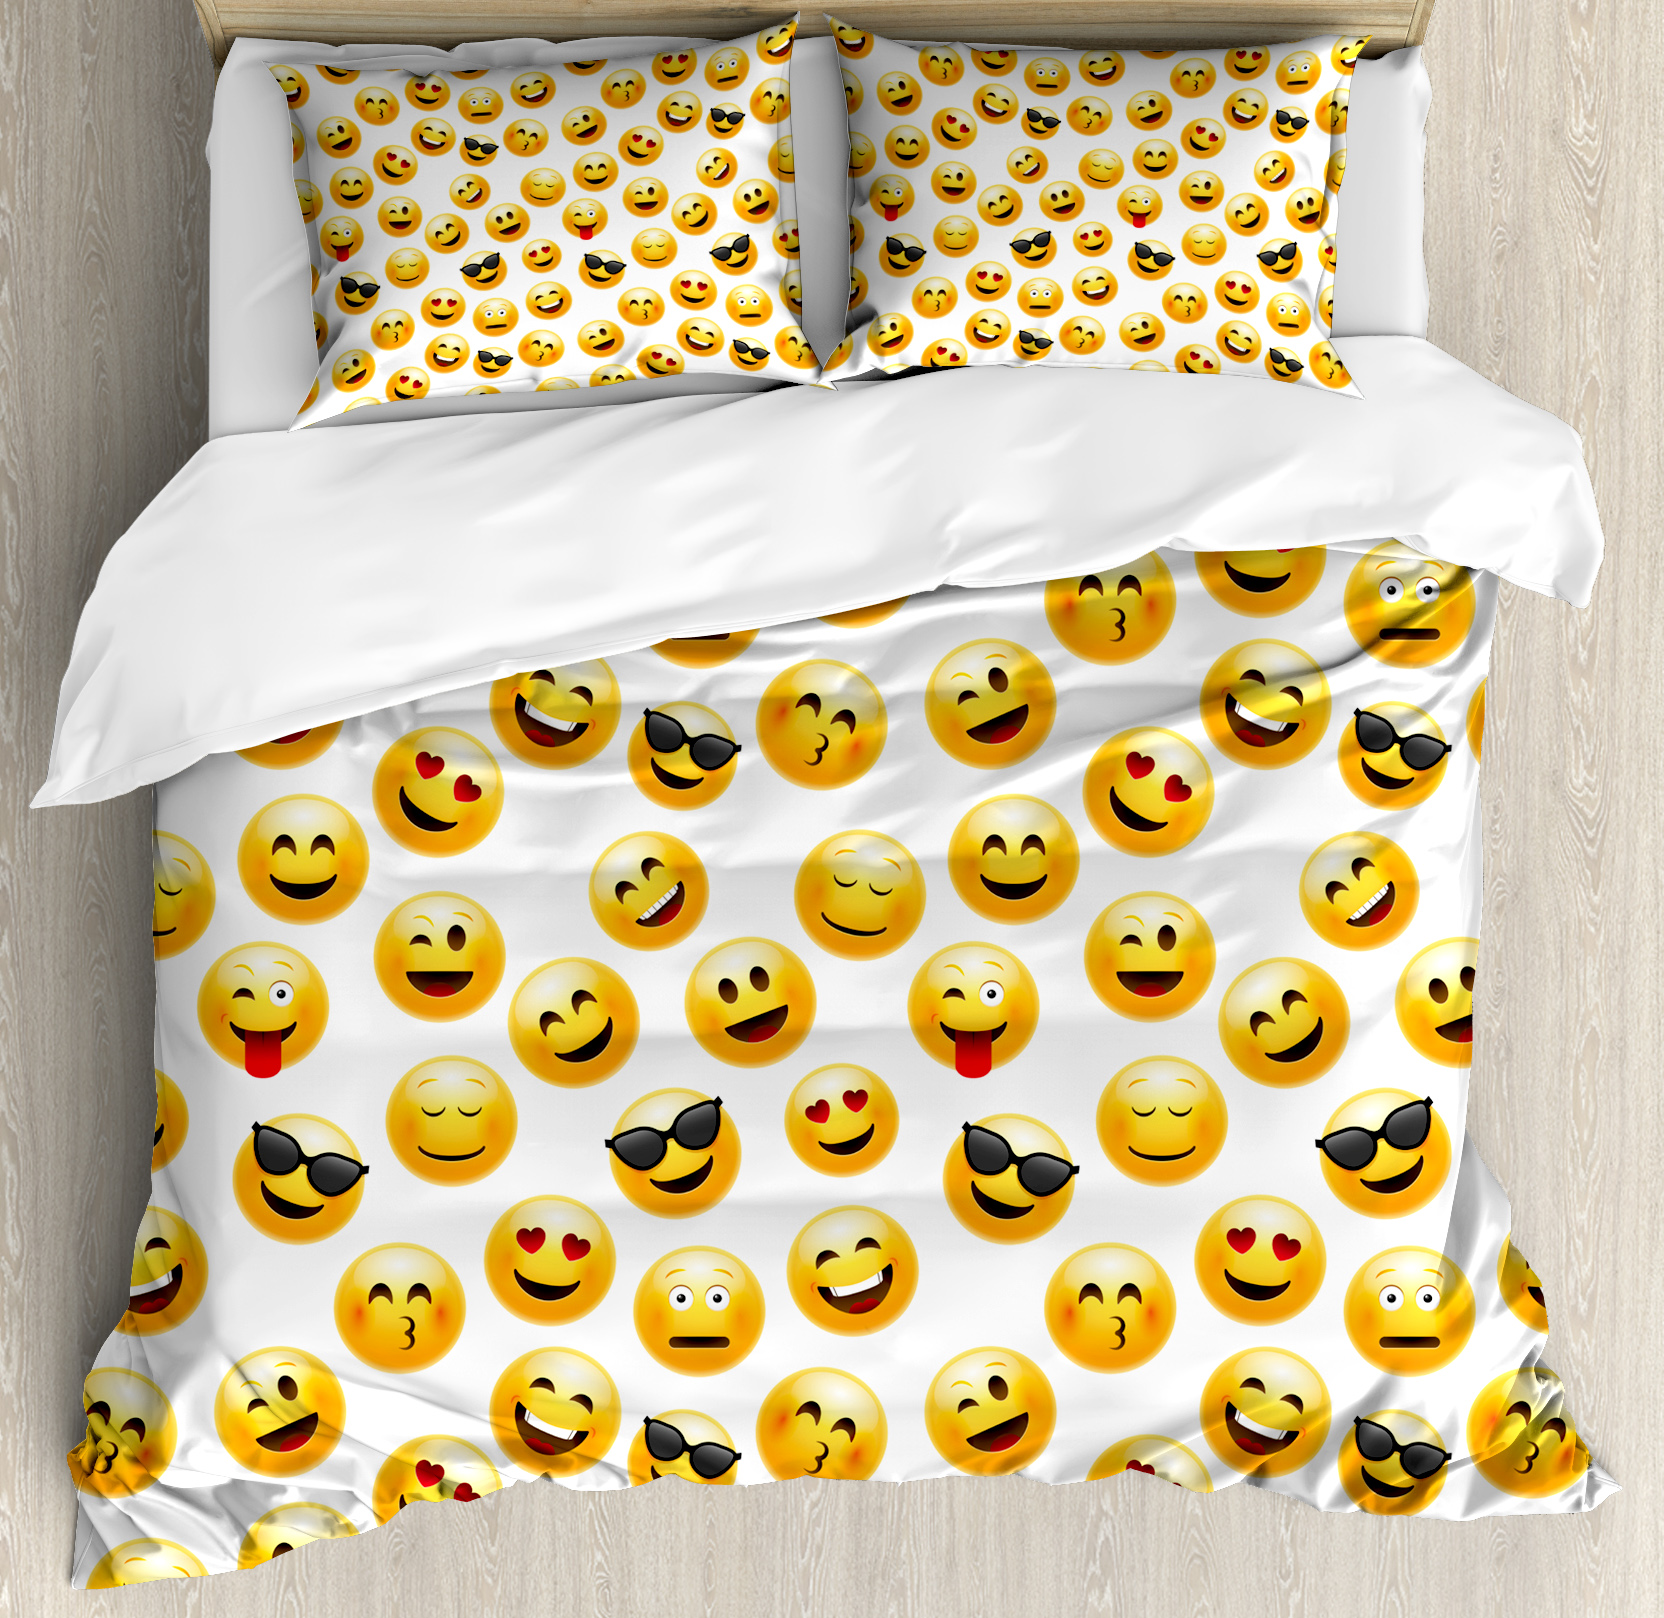 Emoji Duvet Cover Set, Smiley Face Character Illustration Feeling Happy Surprised Cool and In Love, Decorative Bedding Set with Pillow Shams, Yellow Red Black, by Ambesonne